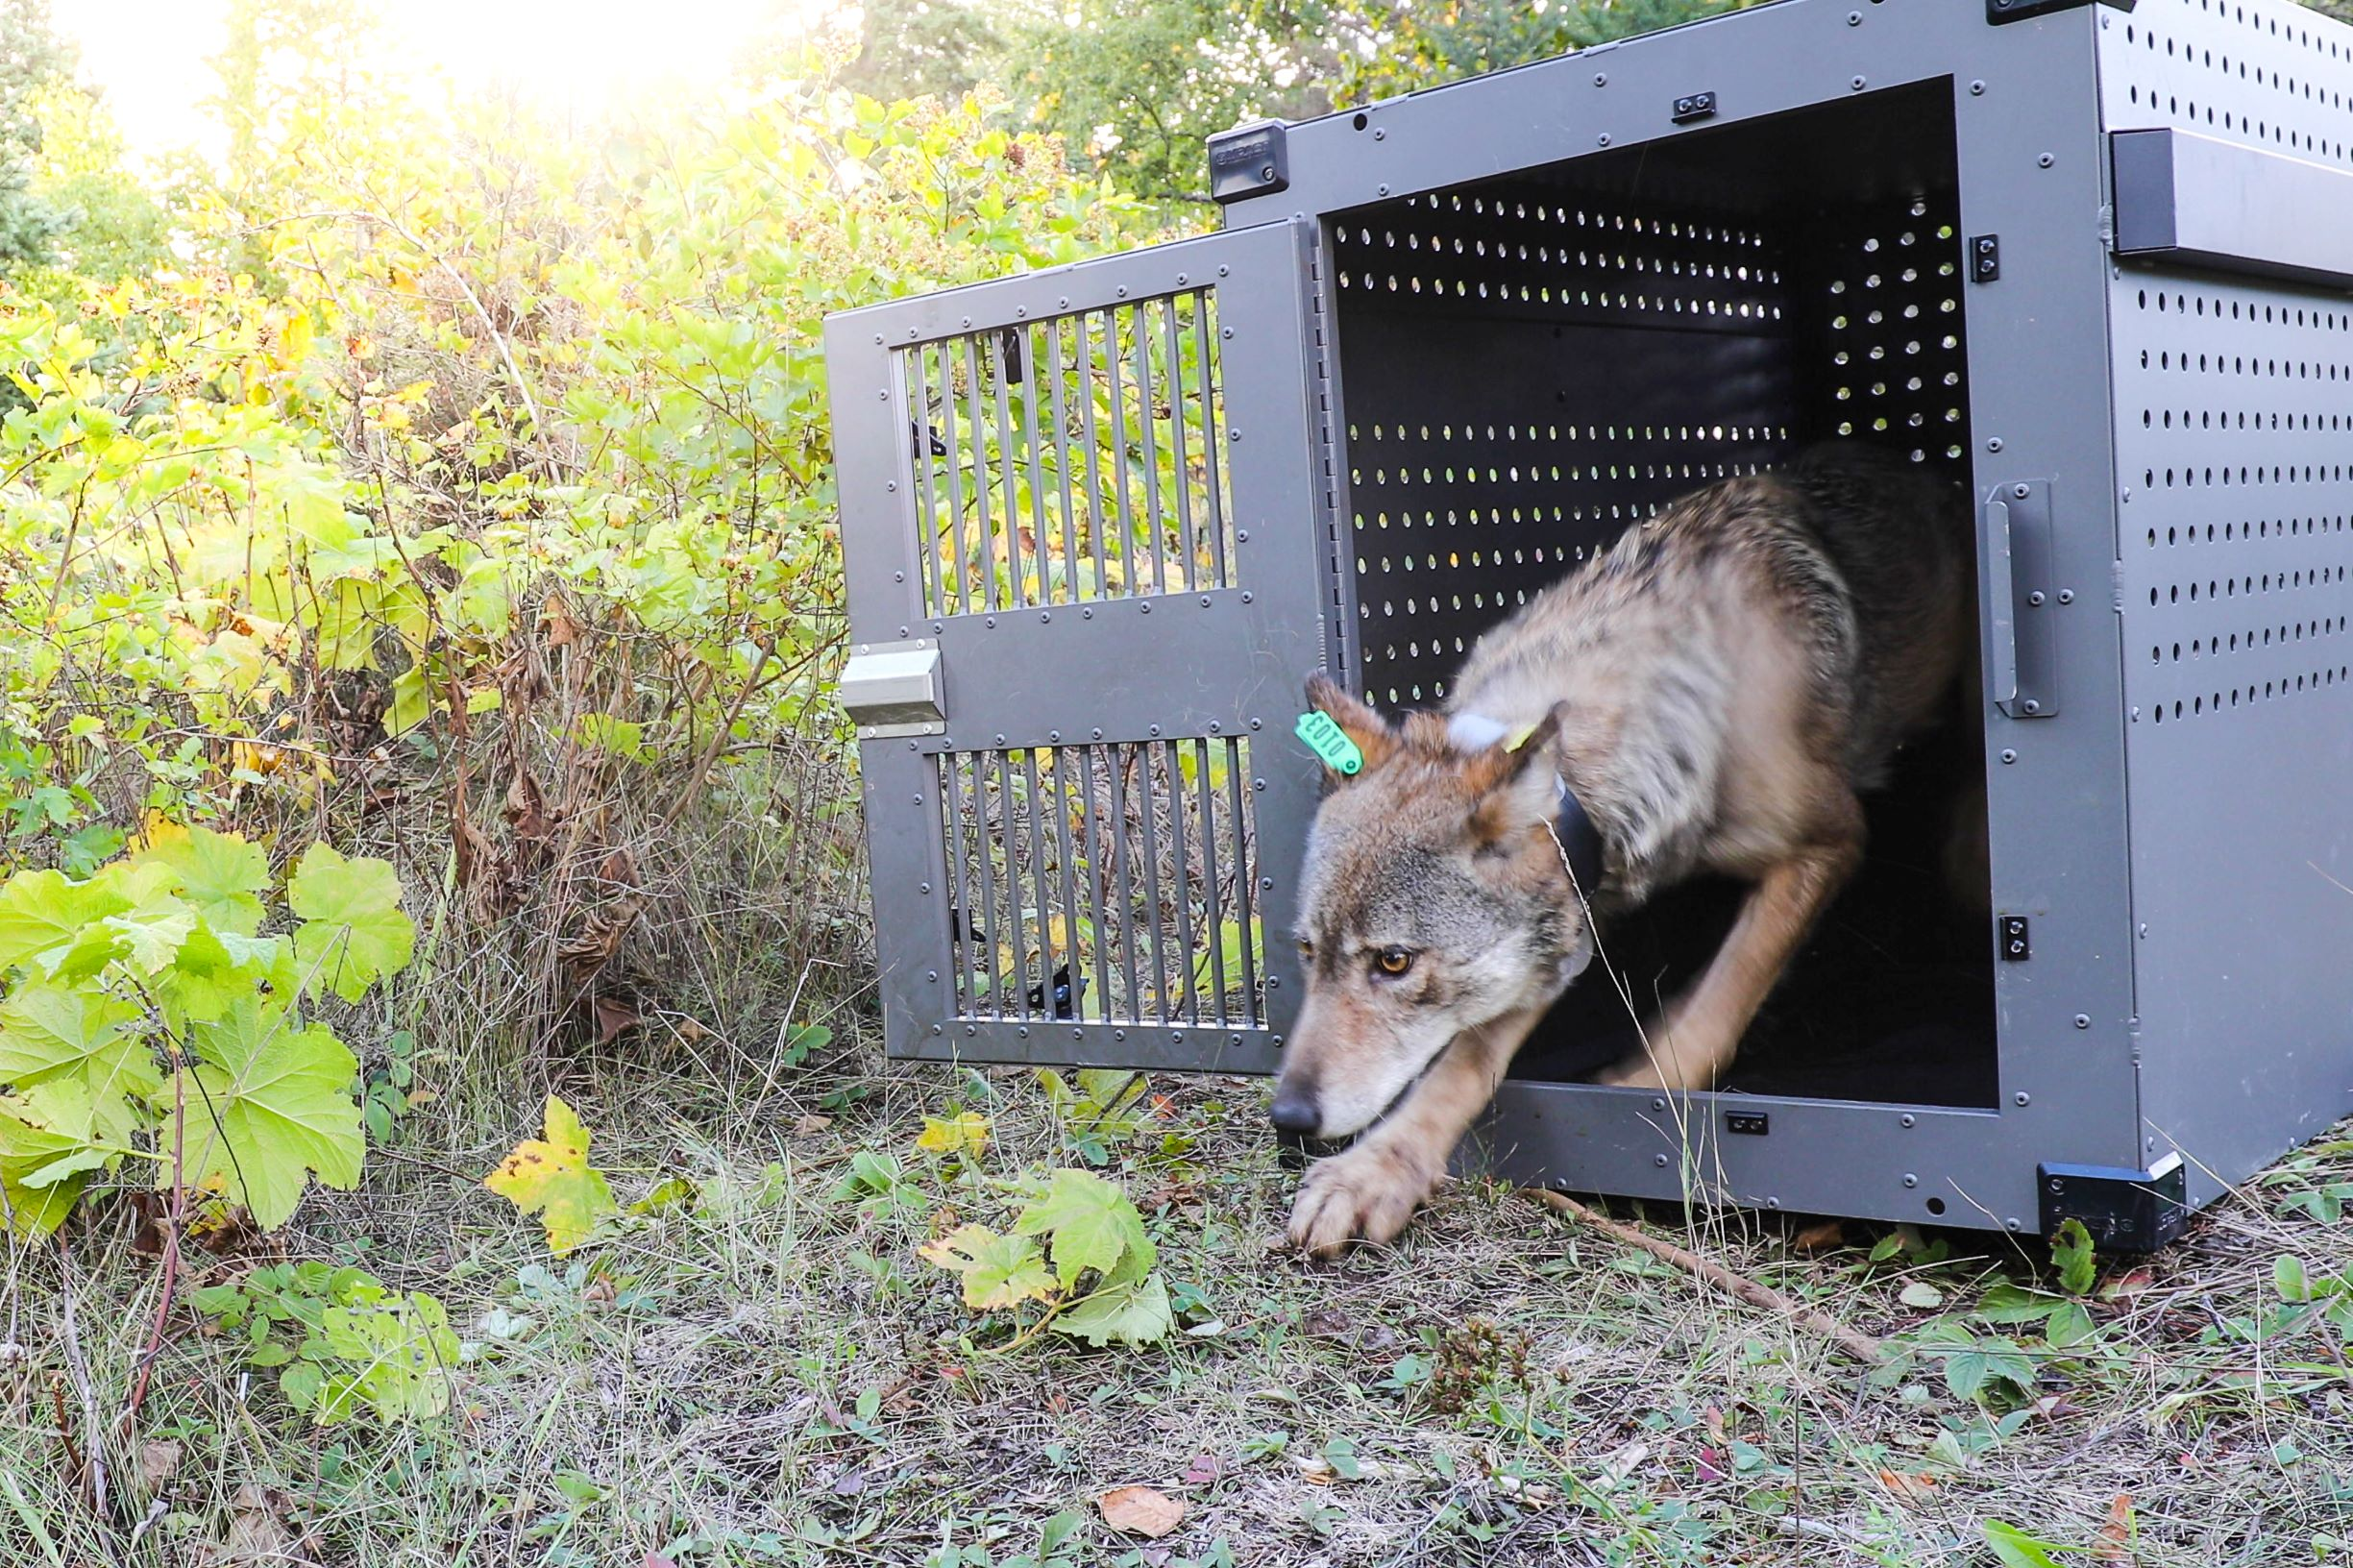 A female wolf emerges from her crate on Isle Royale National Park. Photo credit NPS / Jacob W. Frank